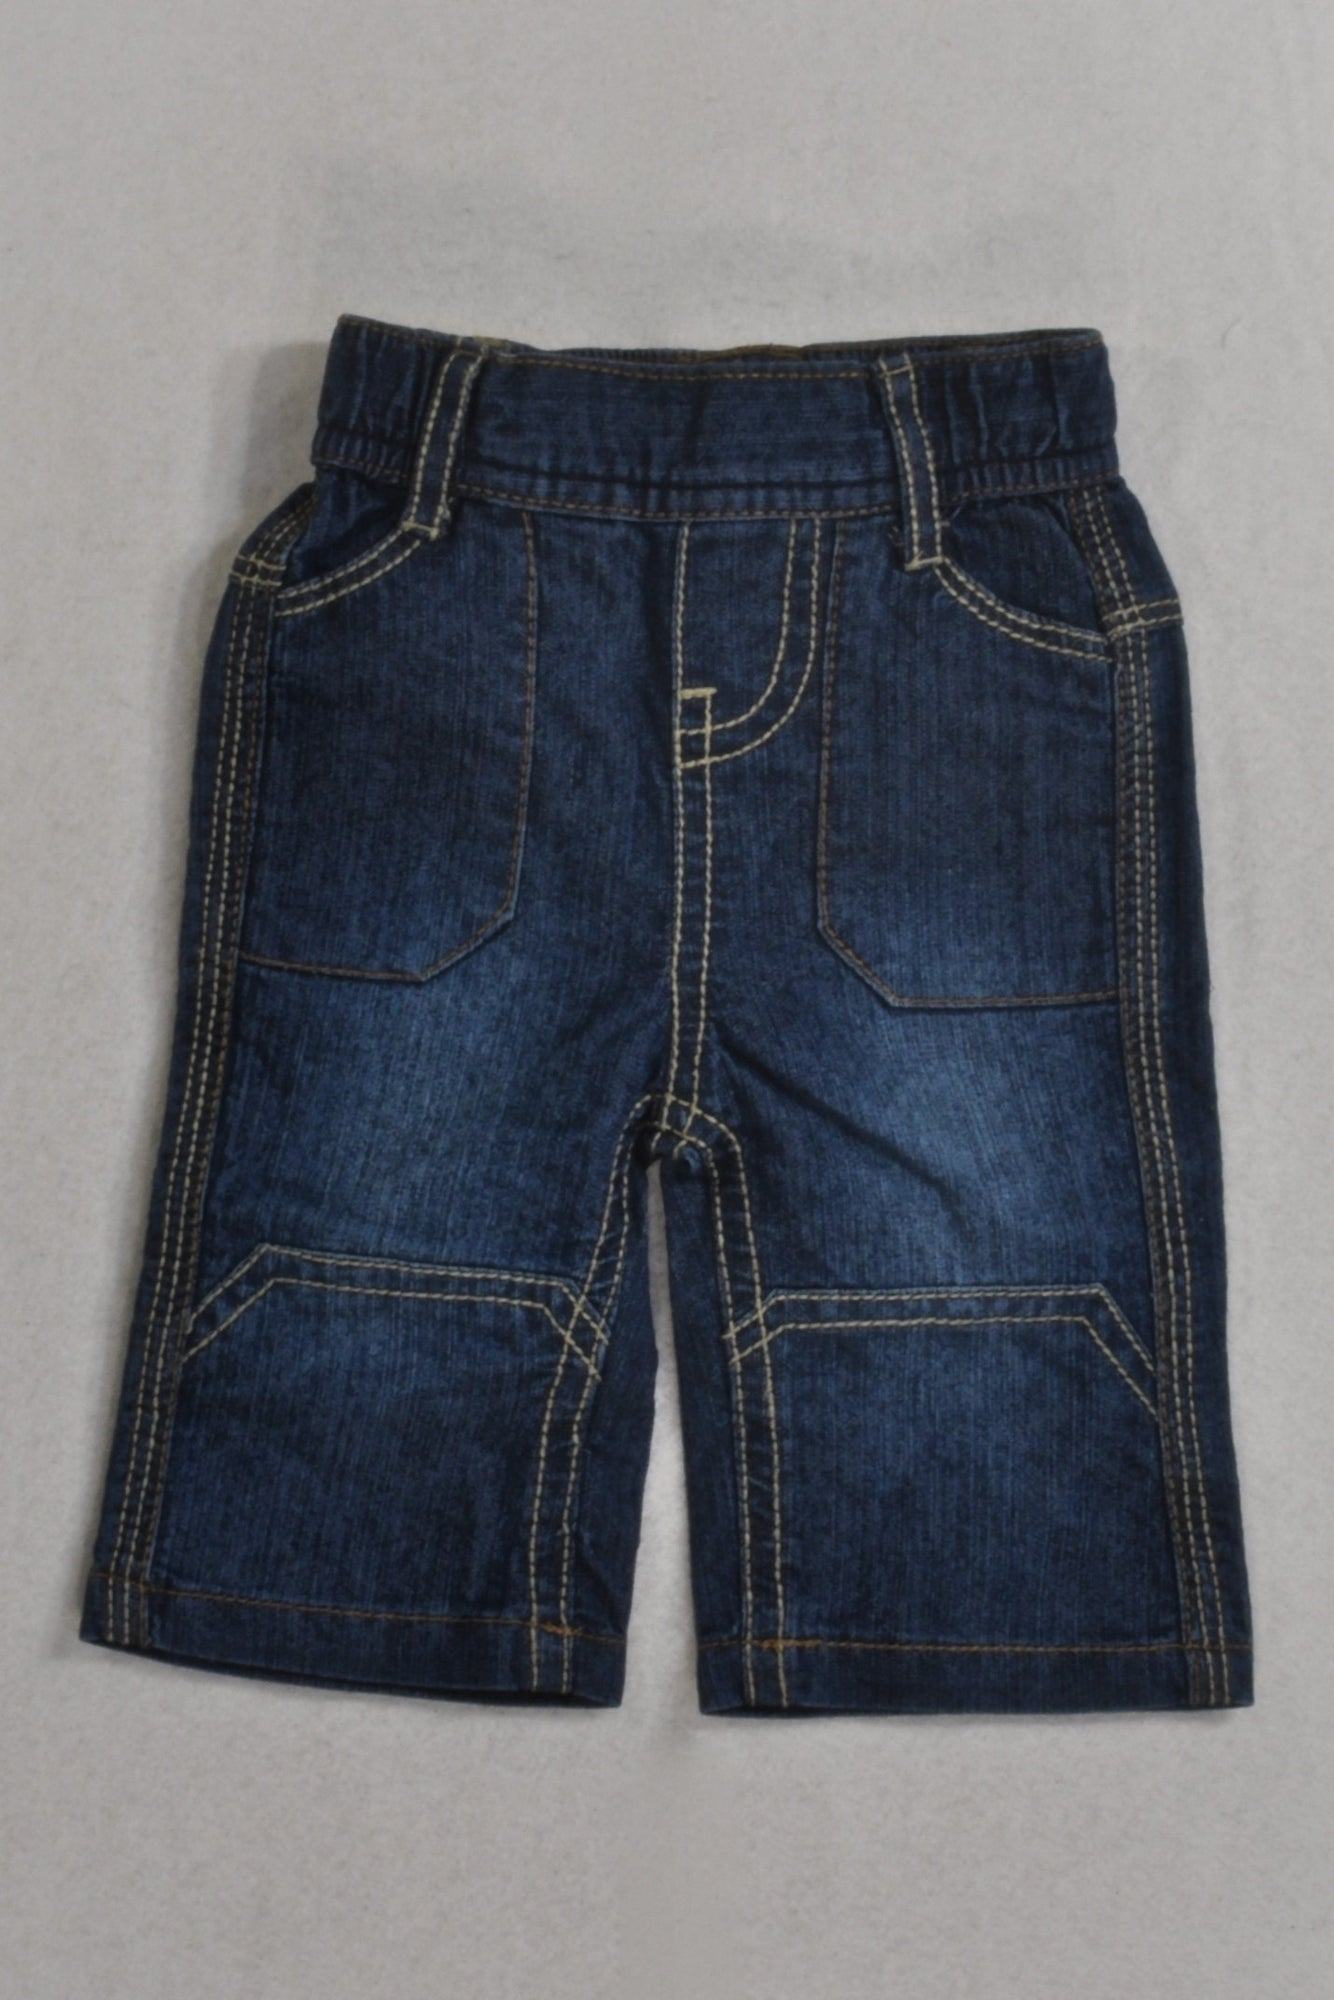 Denim Beige Stitch Jeans Boys 0-3 months